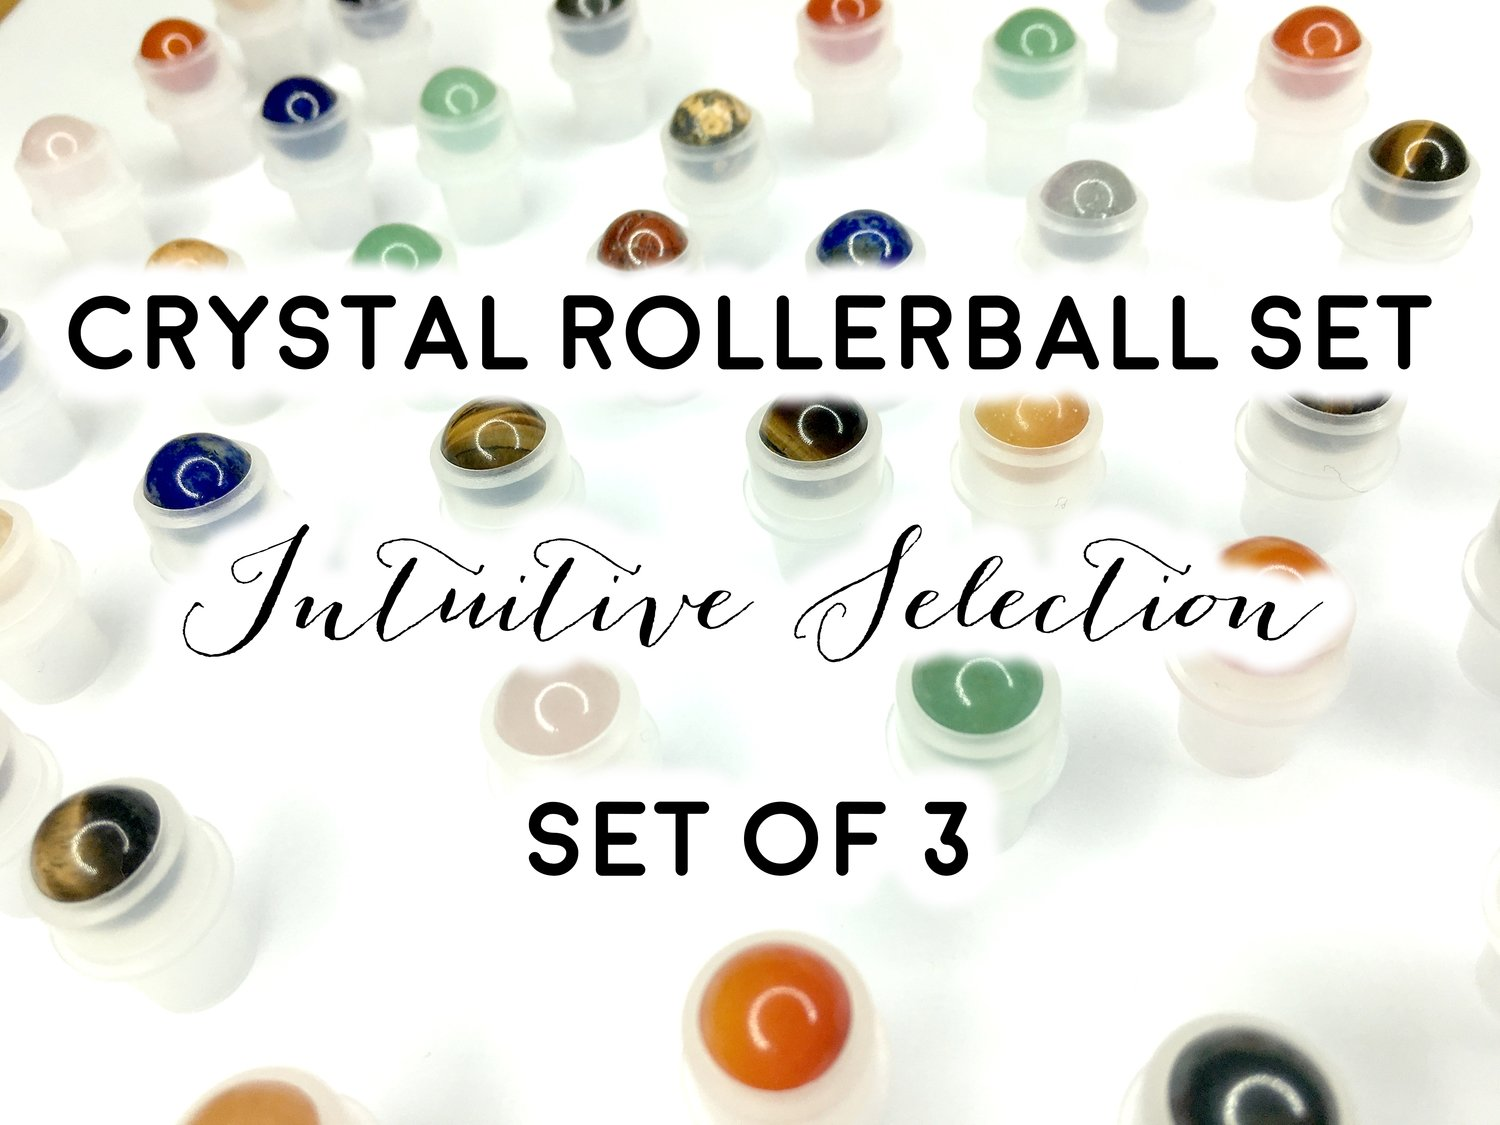 Crystal Rollerballs Set: Intuitive Selection of 3